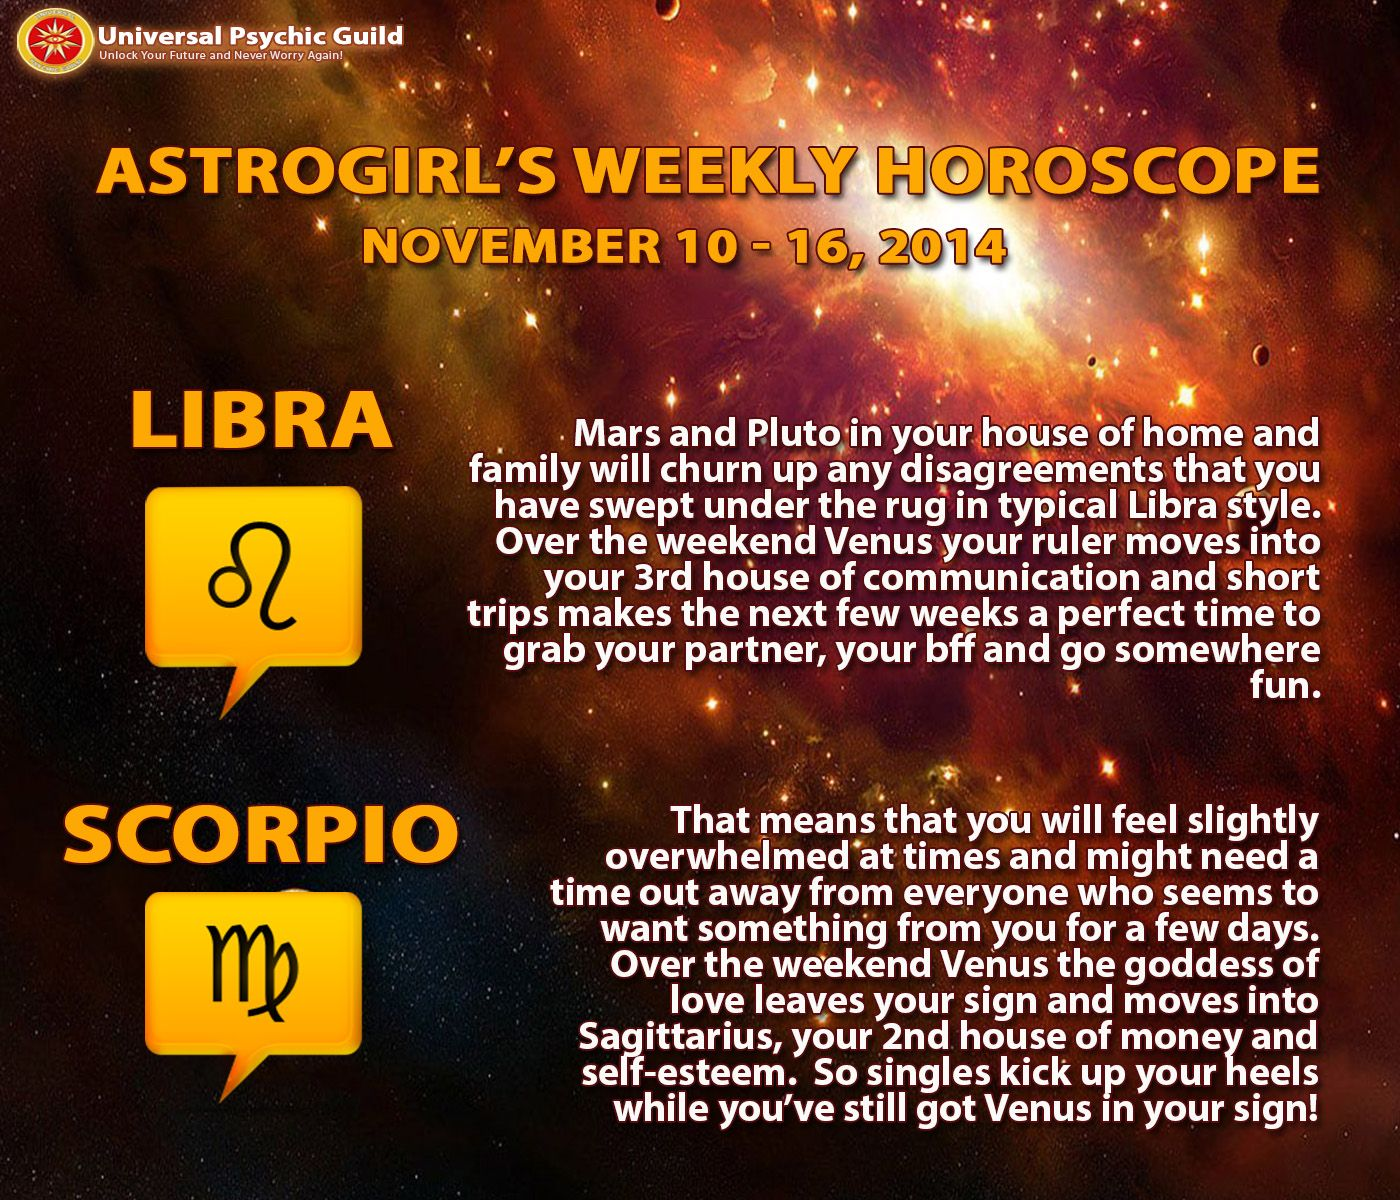 Astrology Updates Weekly Horoscopes For Zodiacsigns Libra And Scorpio November 10 16 2014 Aquarius Weekly Horoscope Weekly Horoscope Libra Horoscope